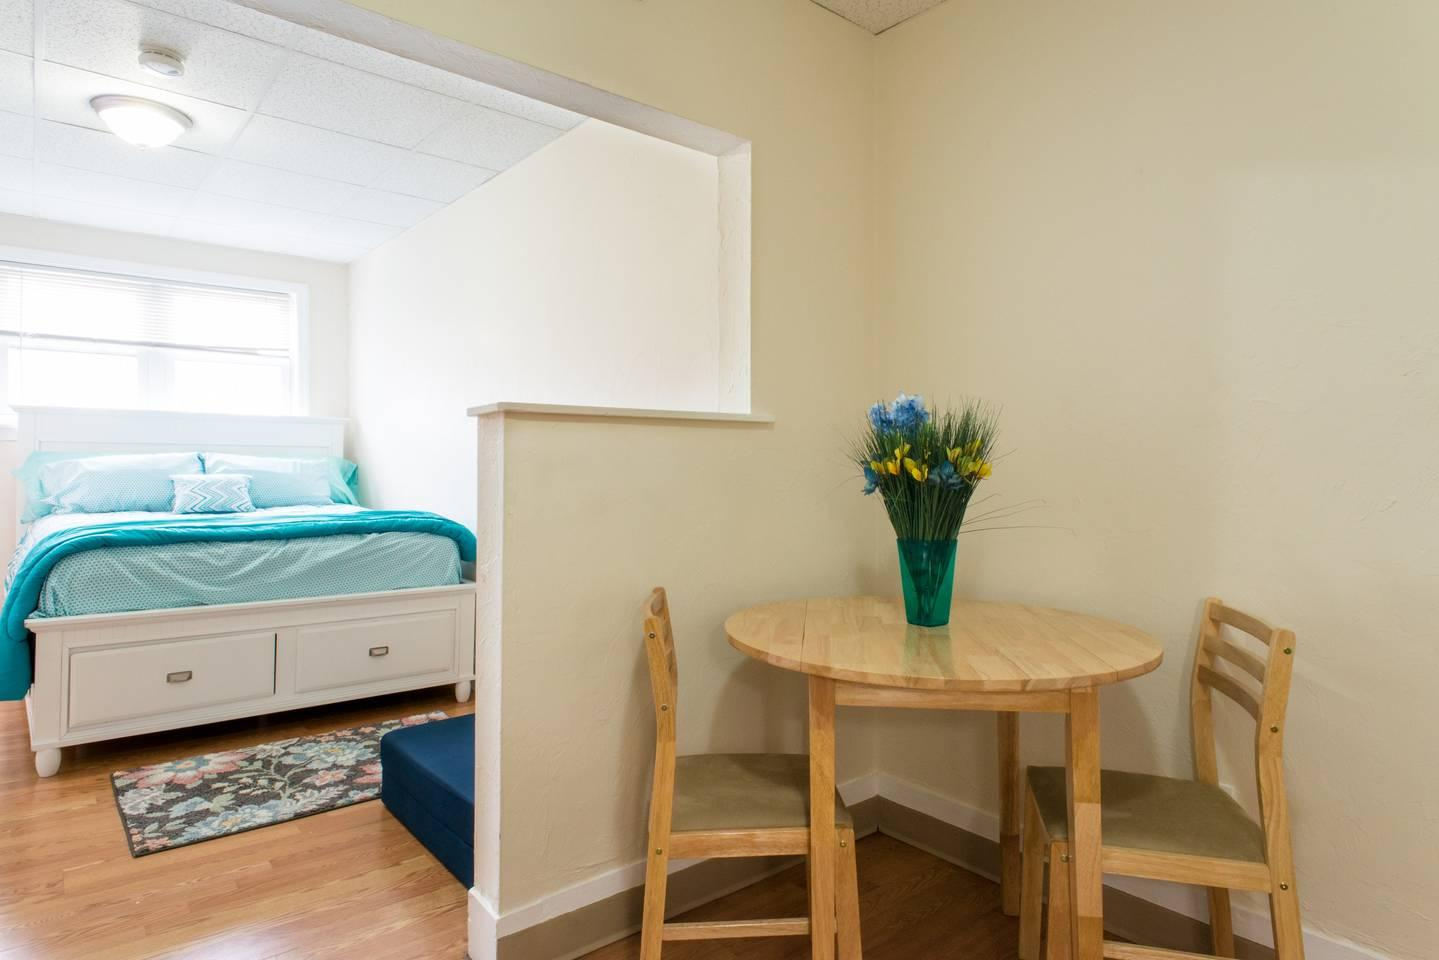 BOSTON AIRBNB SAVE $$$ ON STAY #1A photo 10552864